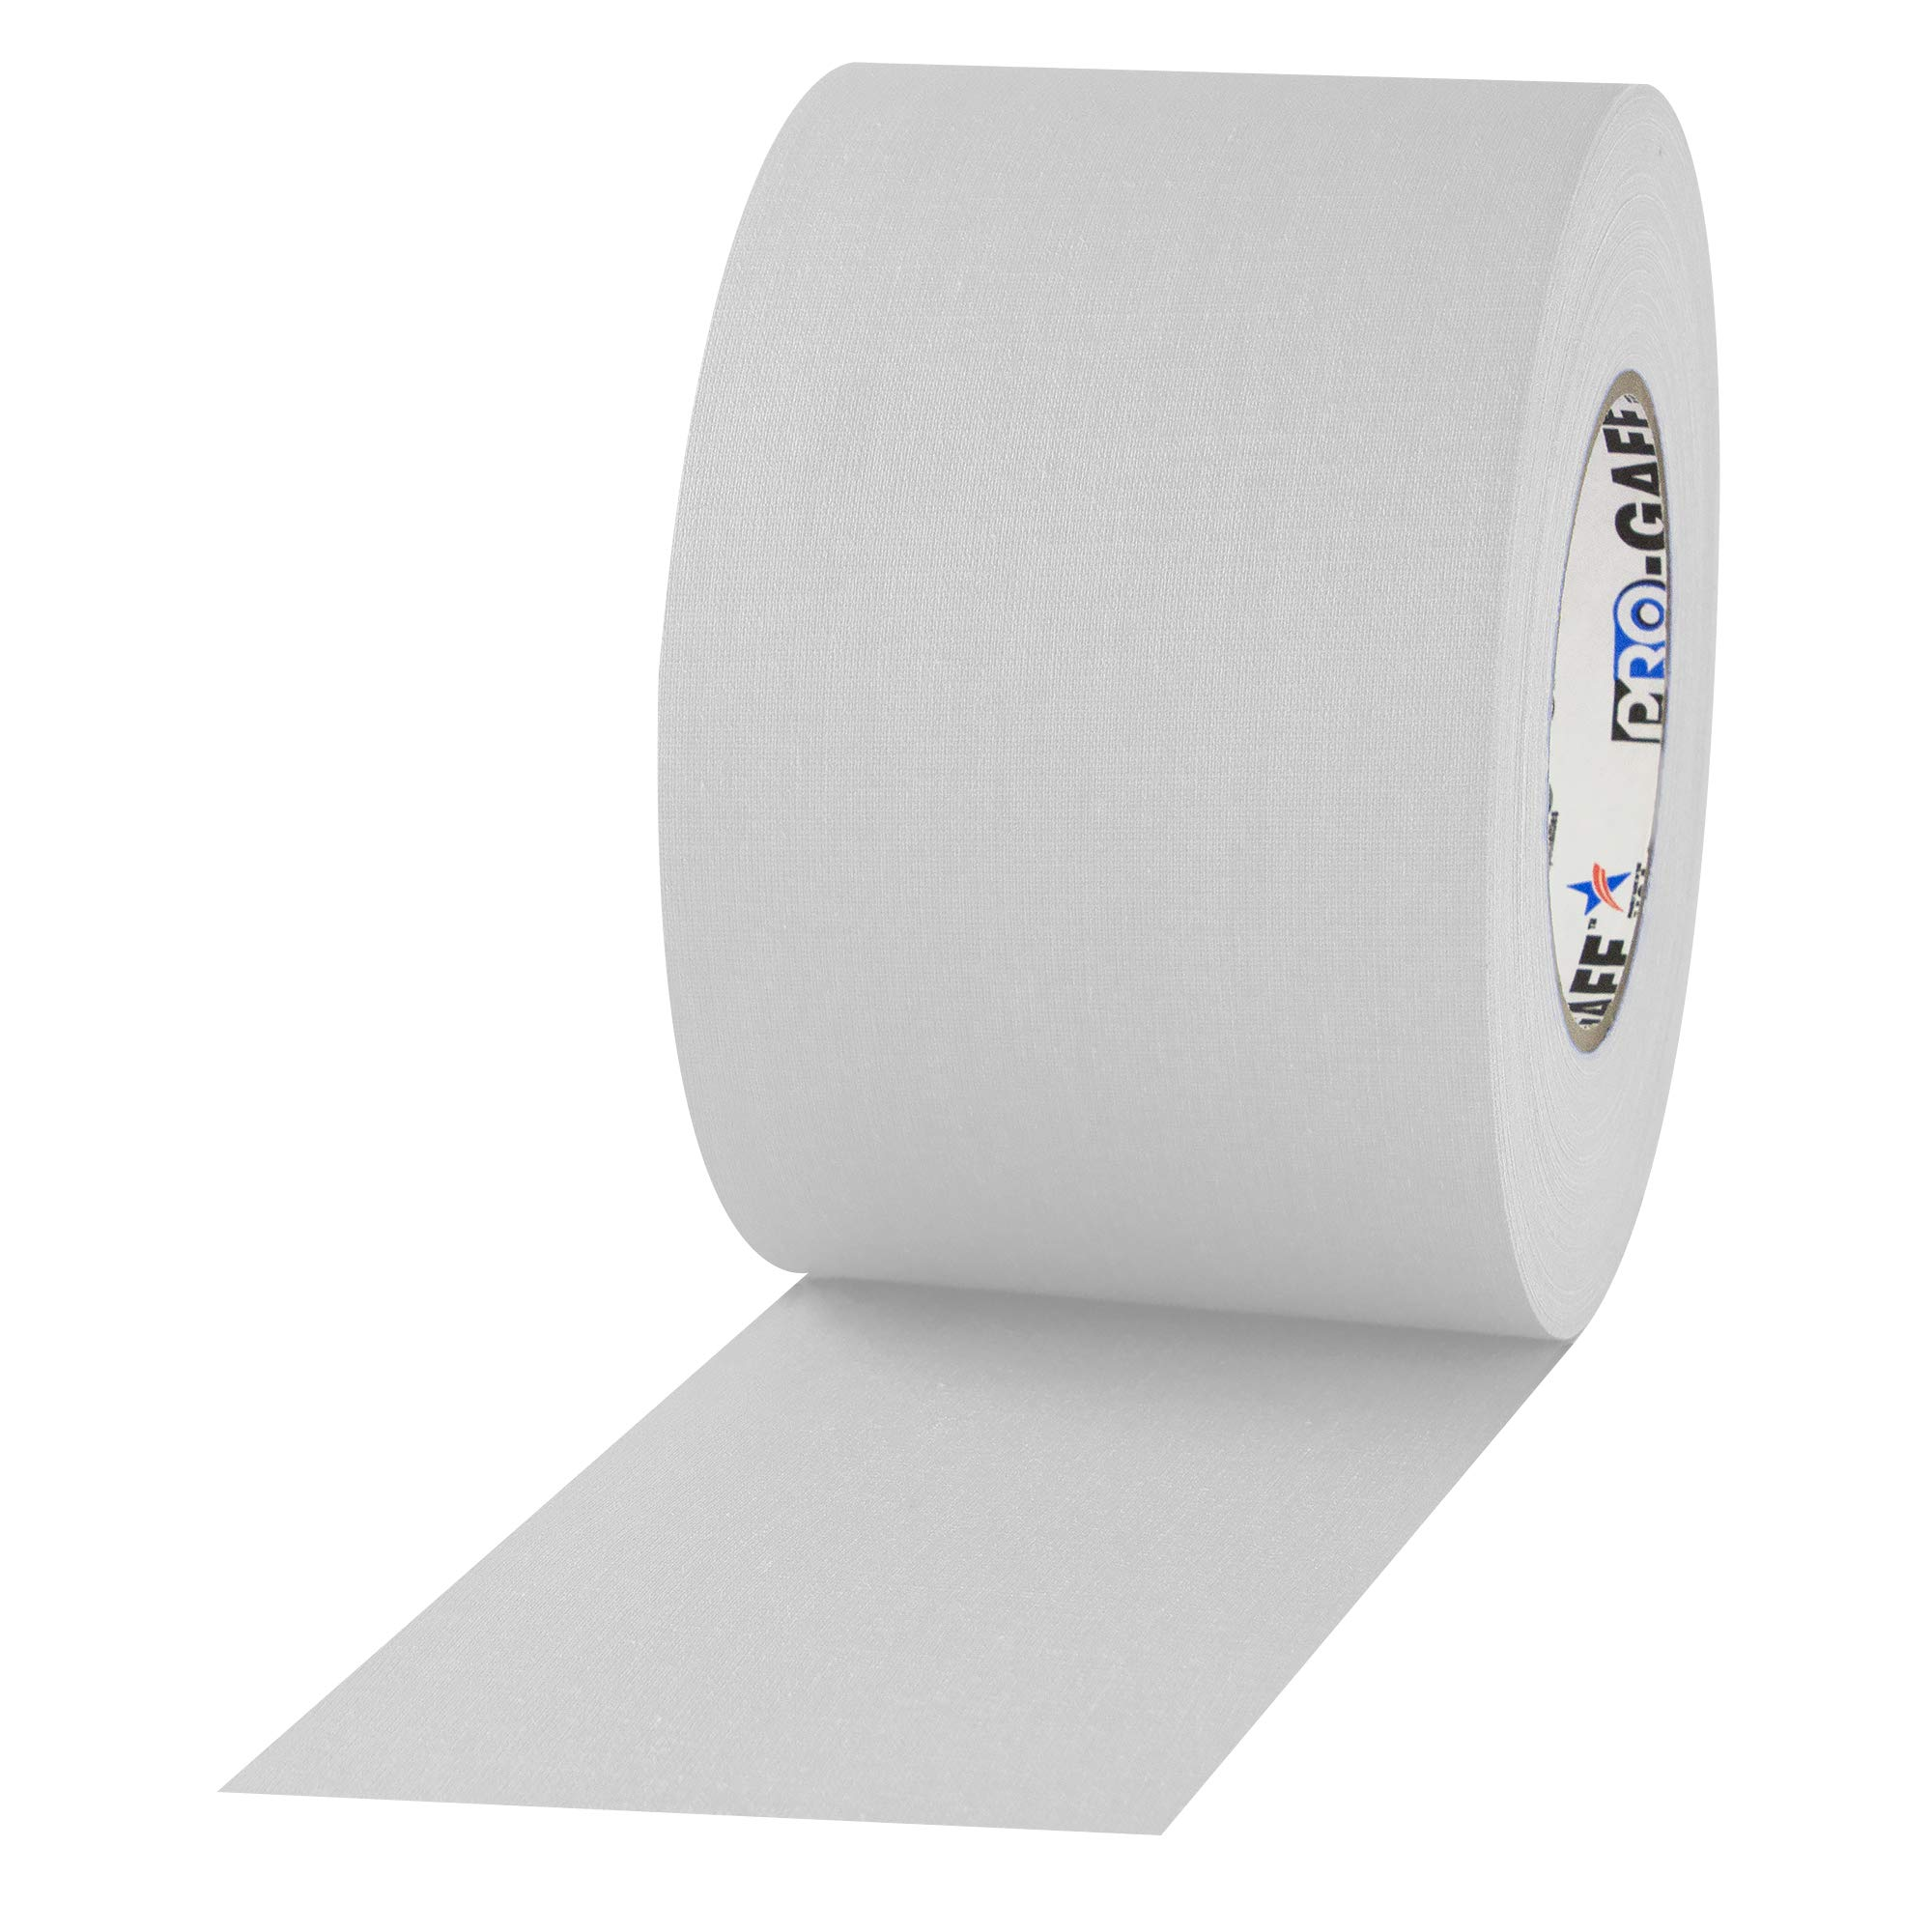 """4"""" Width ProTapes Pro Gaff Premium Matte Cloth Gaffer's Tape With Rubber Adhesive, 11 mils Thick, 55 yds Length, White (Pack of 1)"""